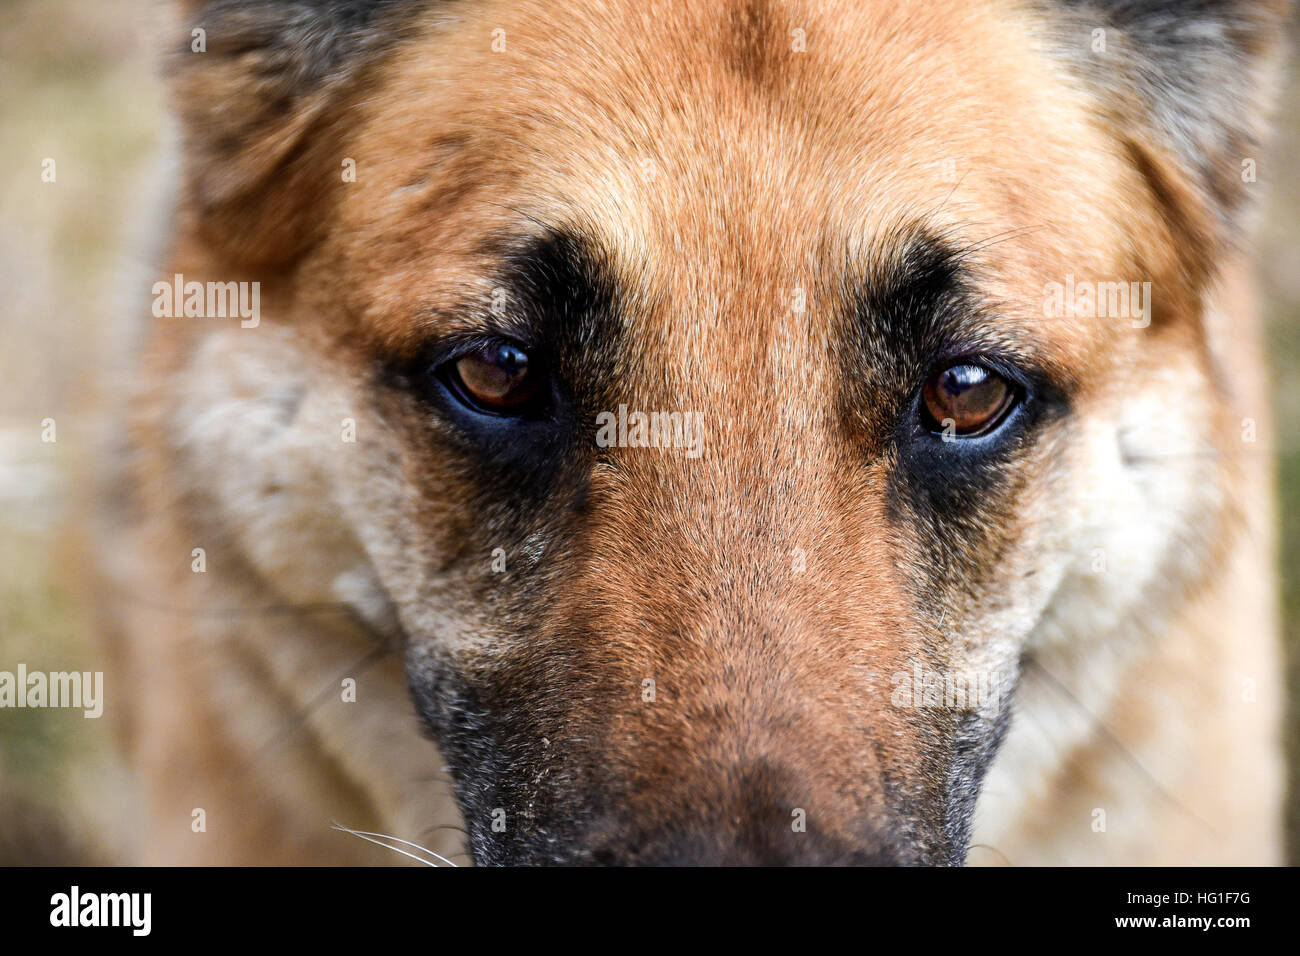 German Shepherd face cropped with focused brown eyes. - Stock Image